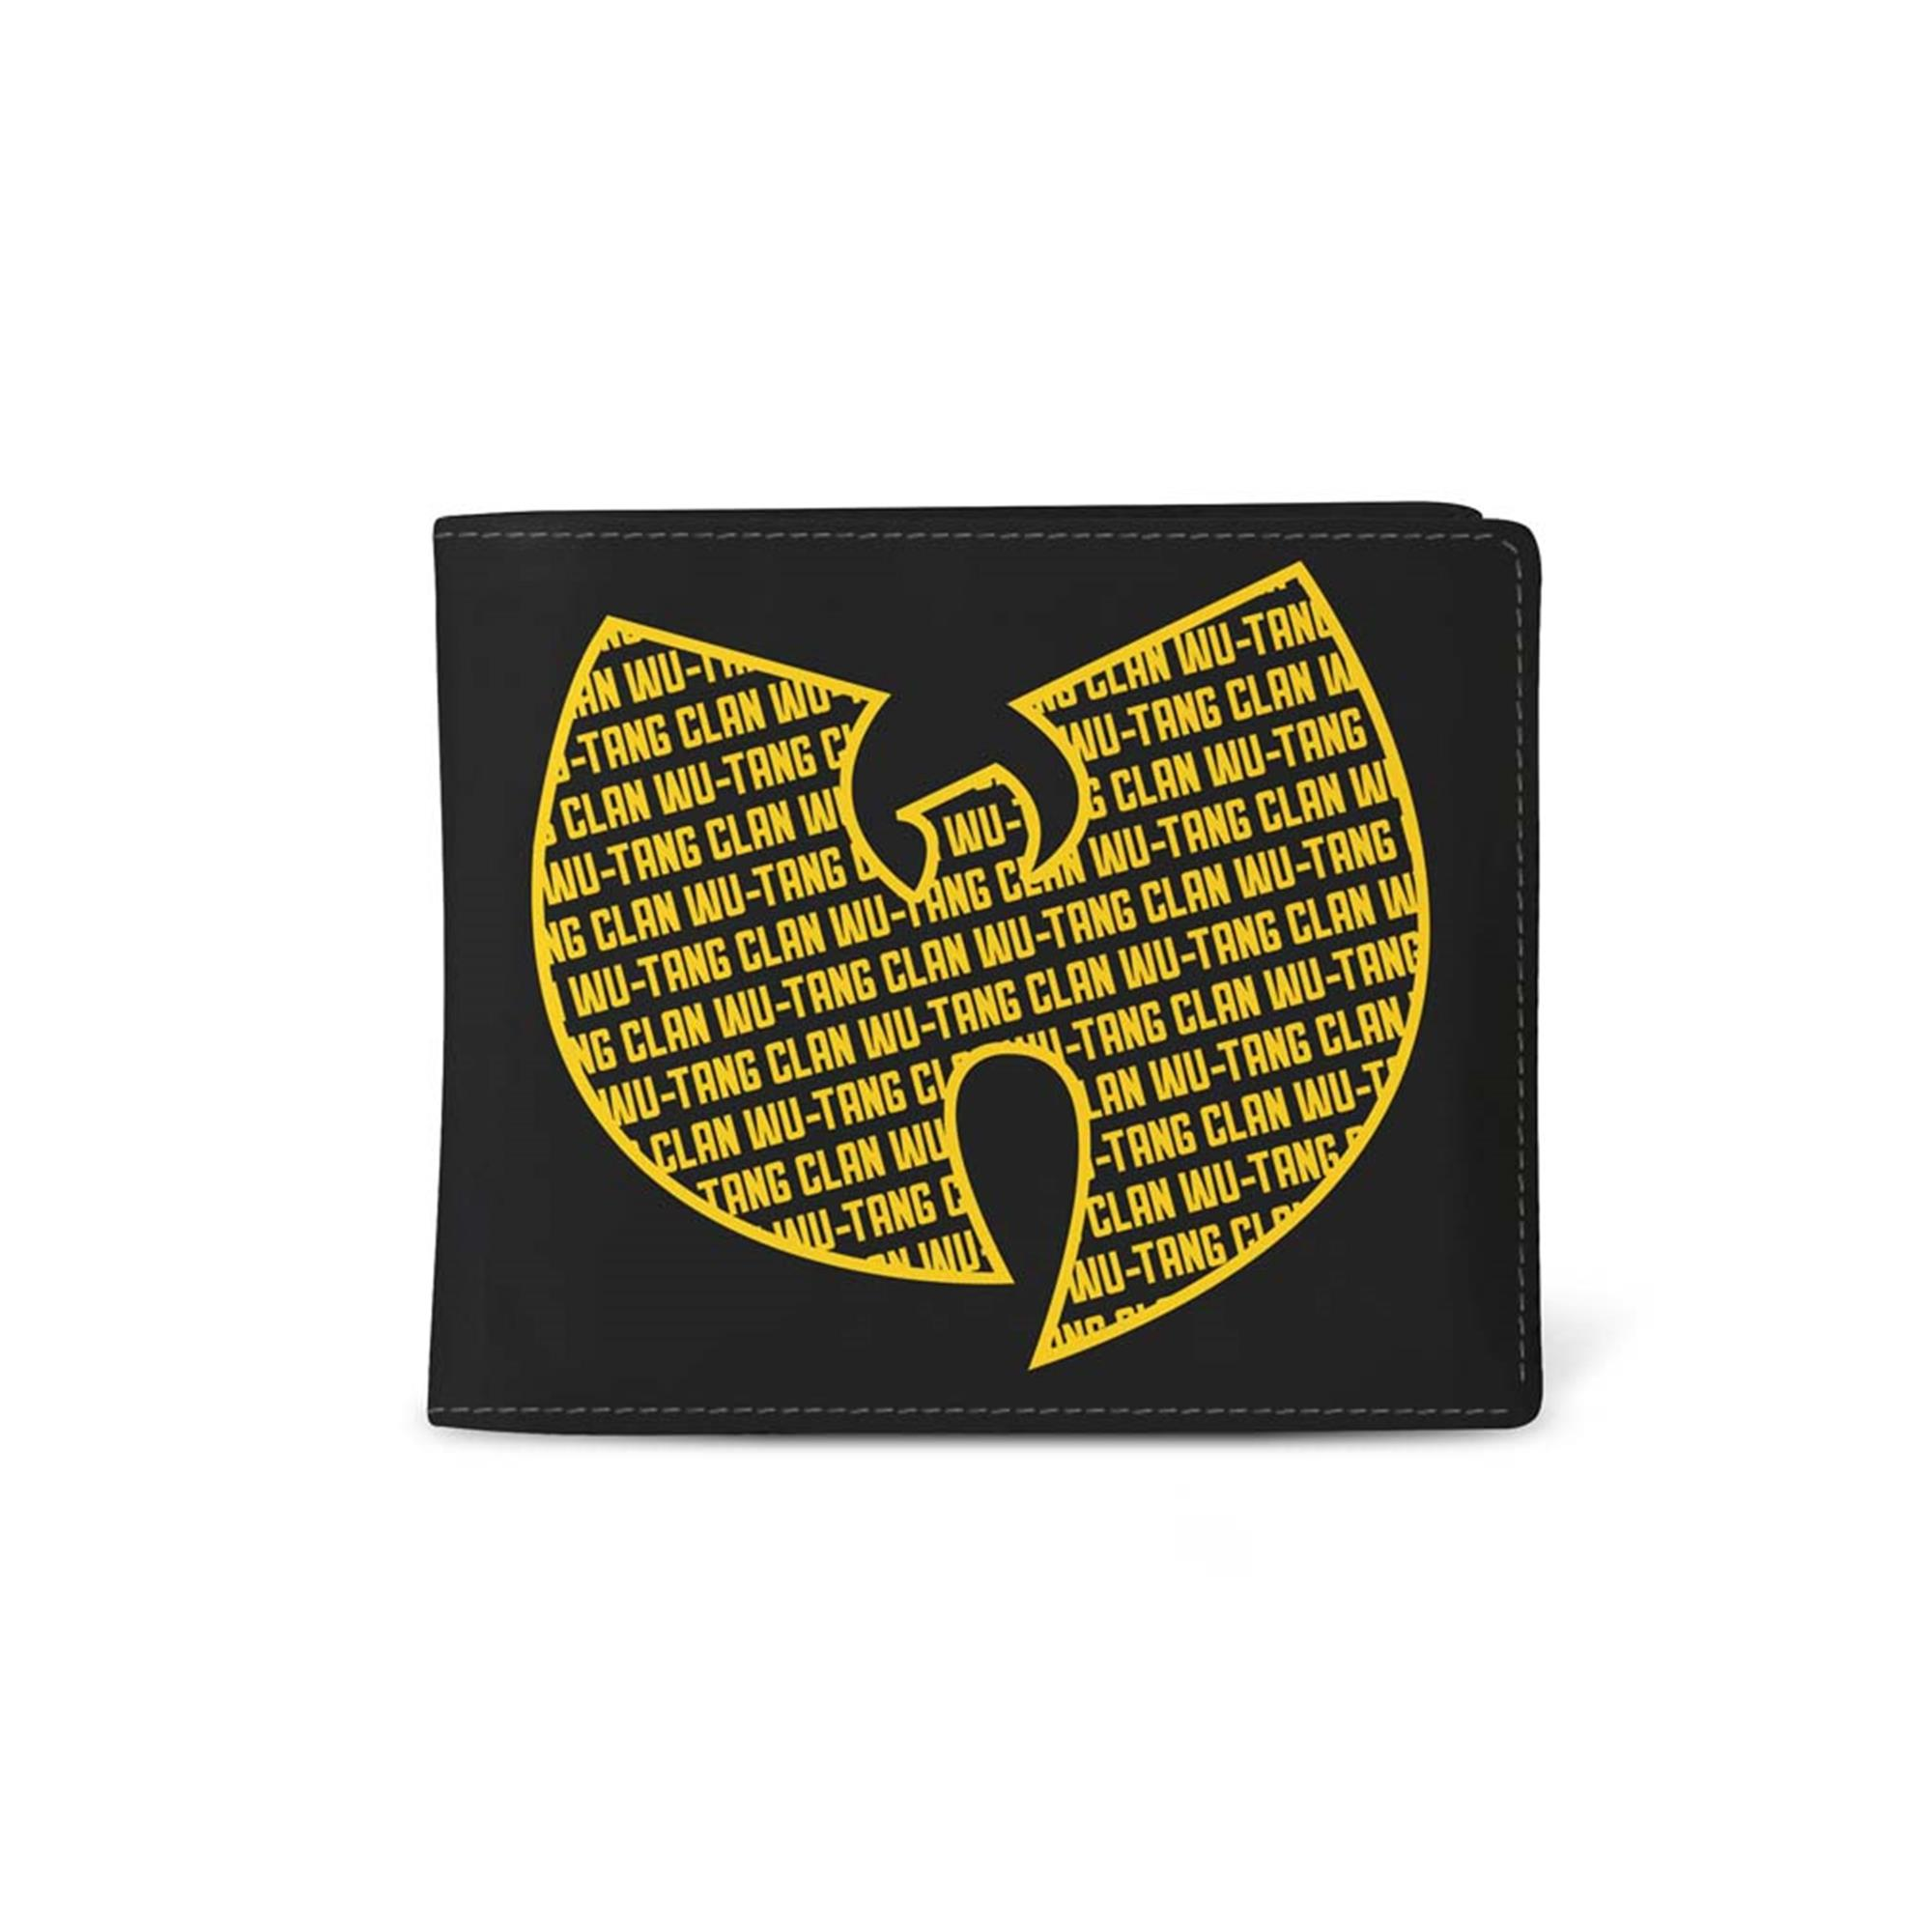 Wu-Tang Ain't Nuthing Wallet